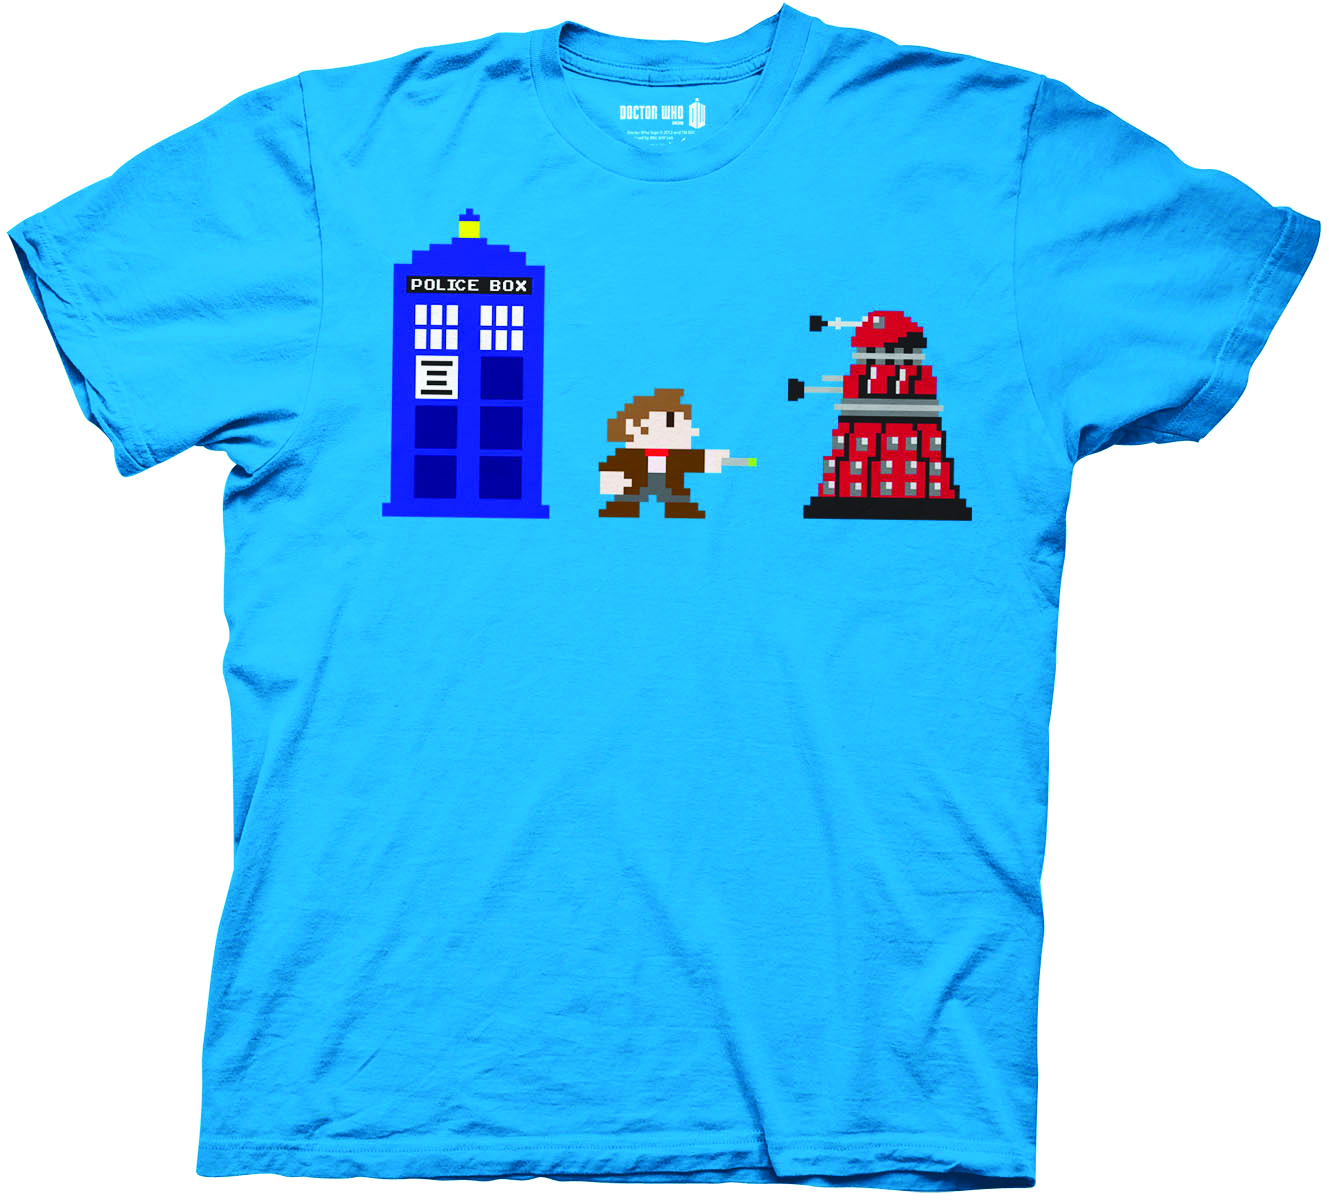 DOCTOR WHO 8 BIT PX TURQUOISE T/S MED